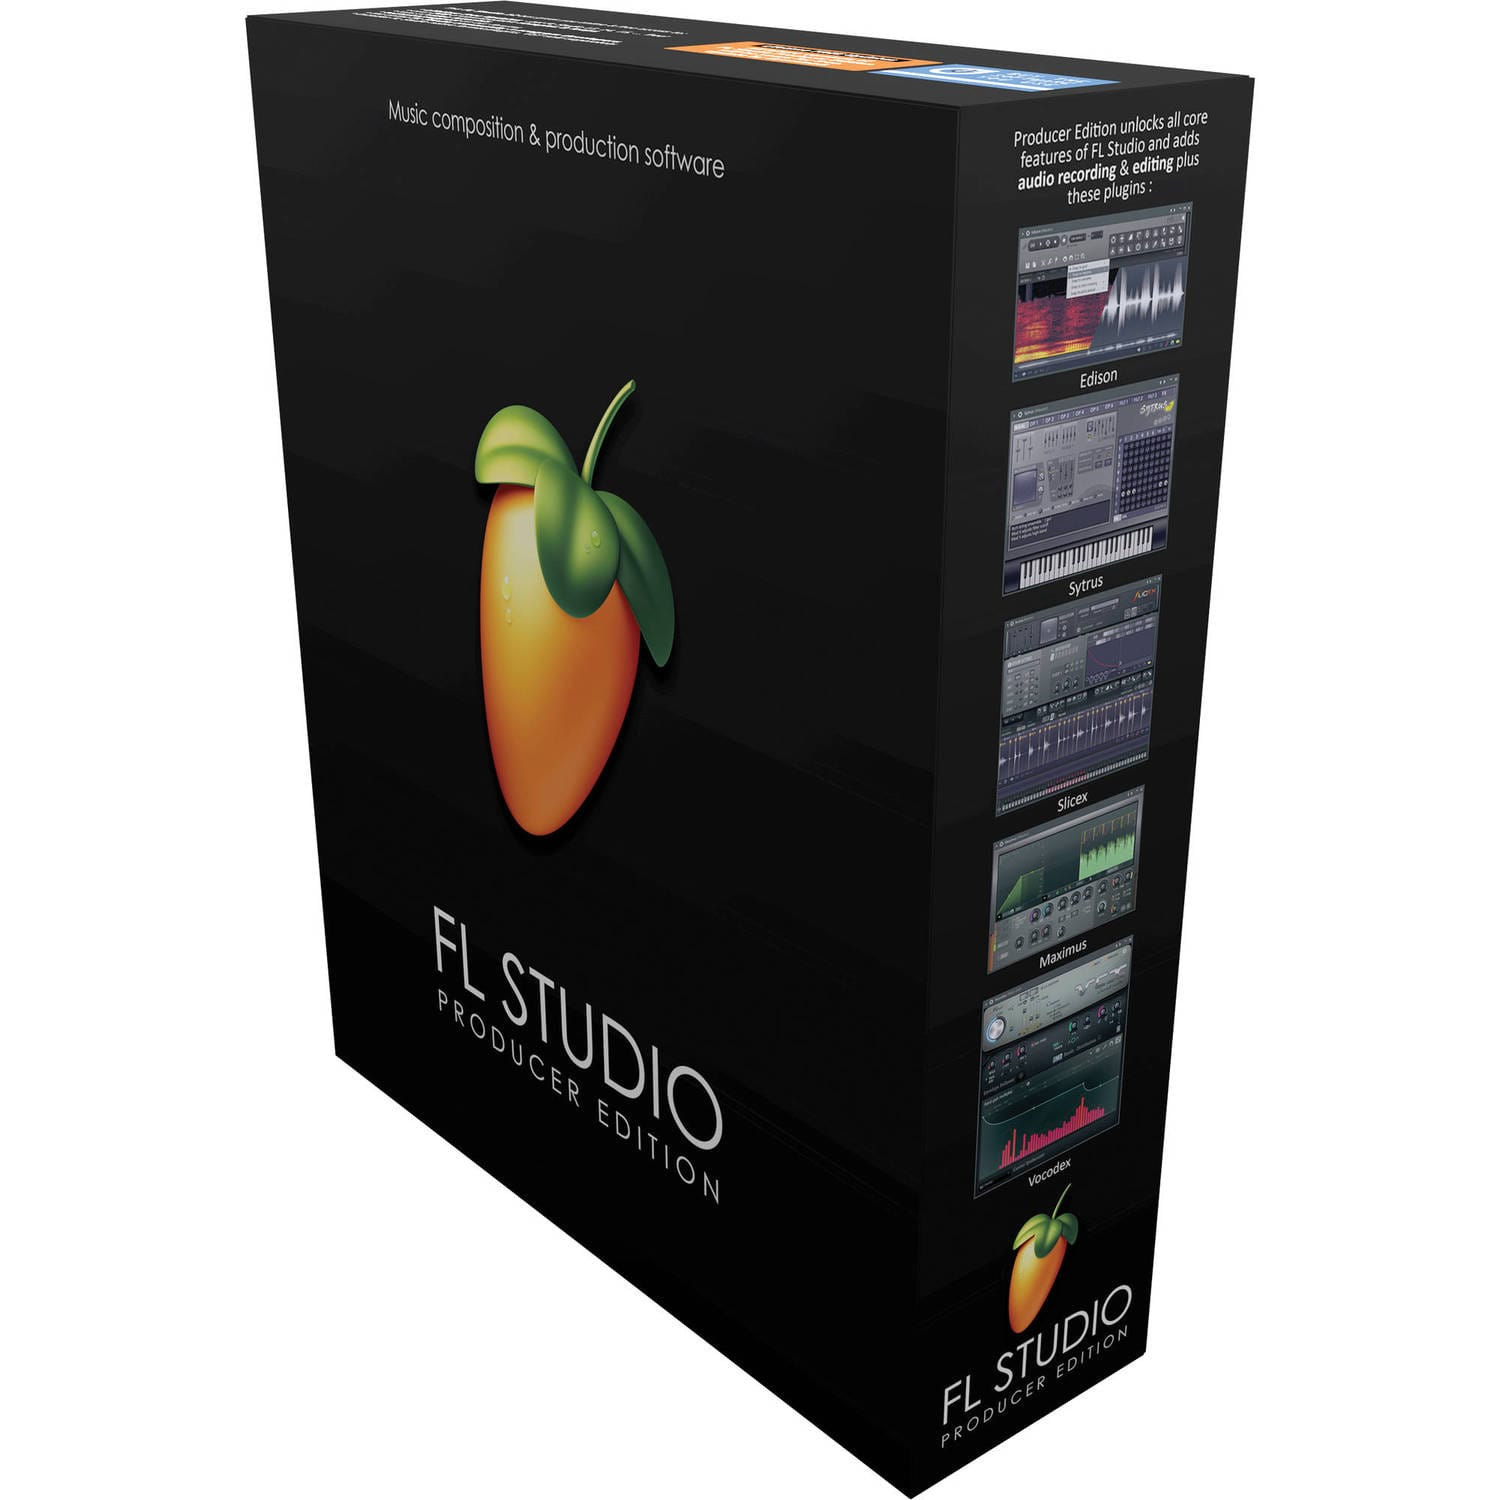 Fl studio 12 crack only producer edition free download full version.